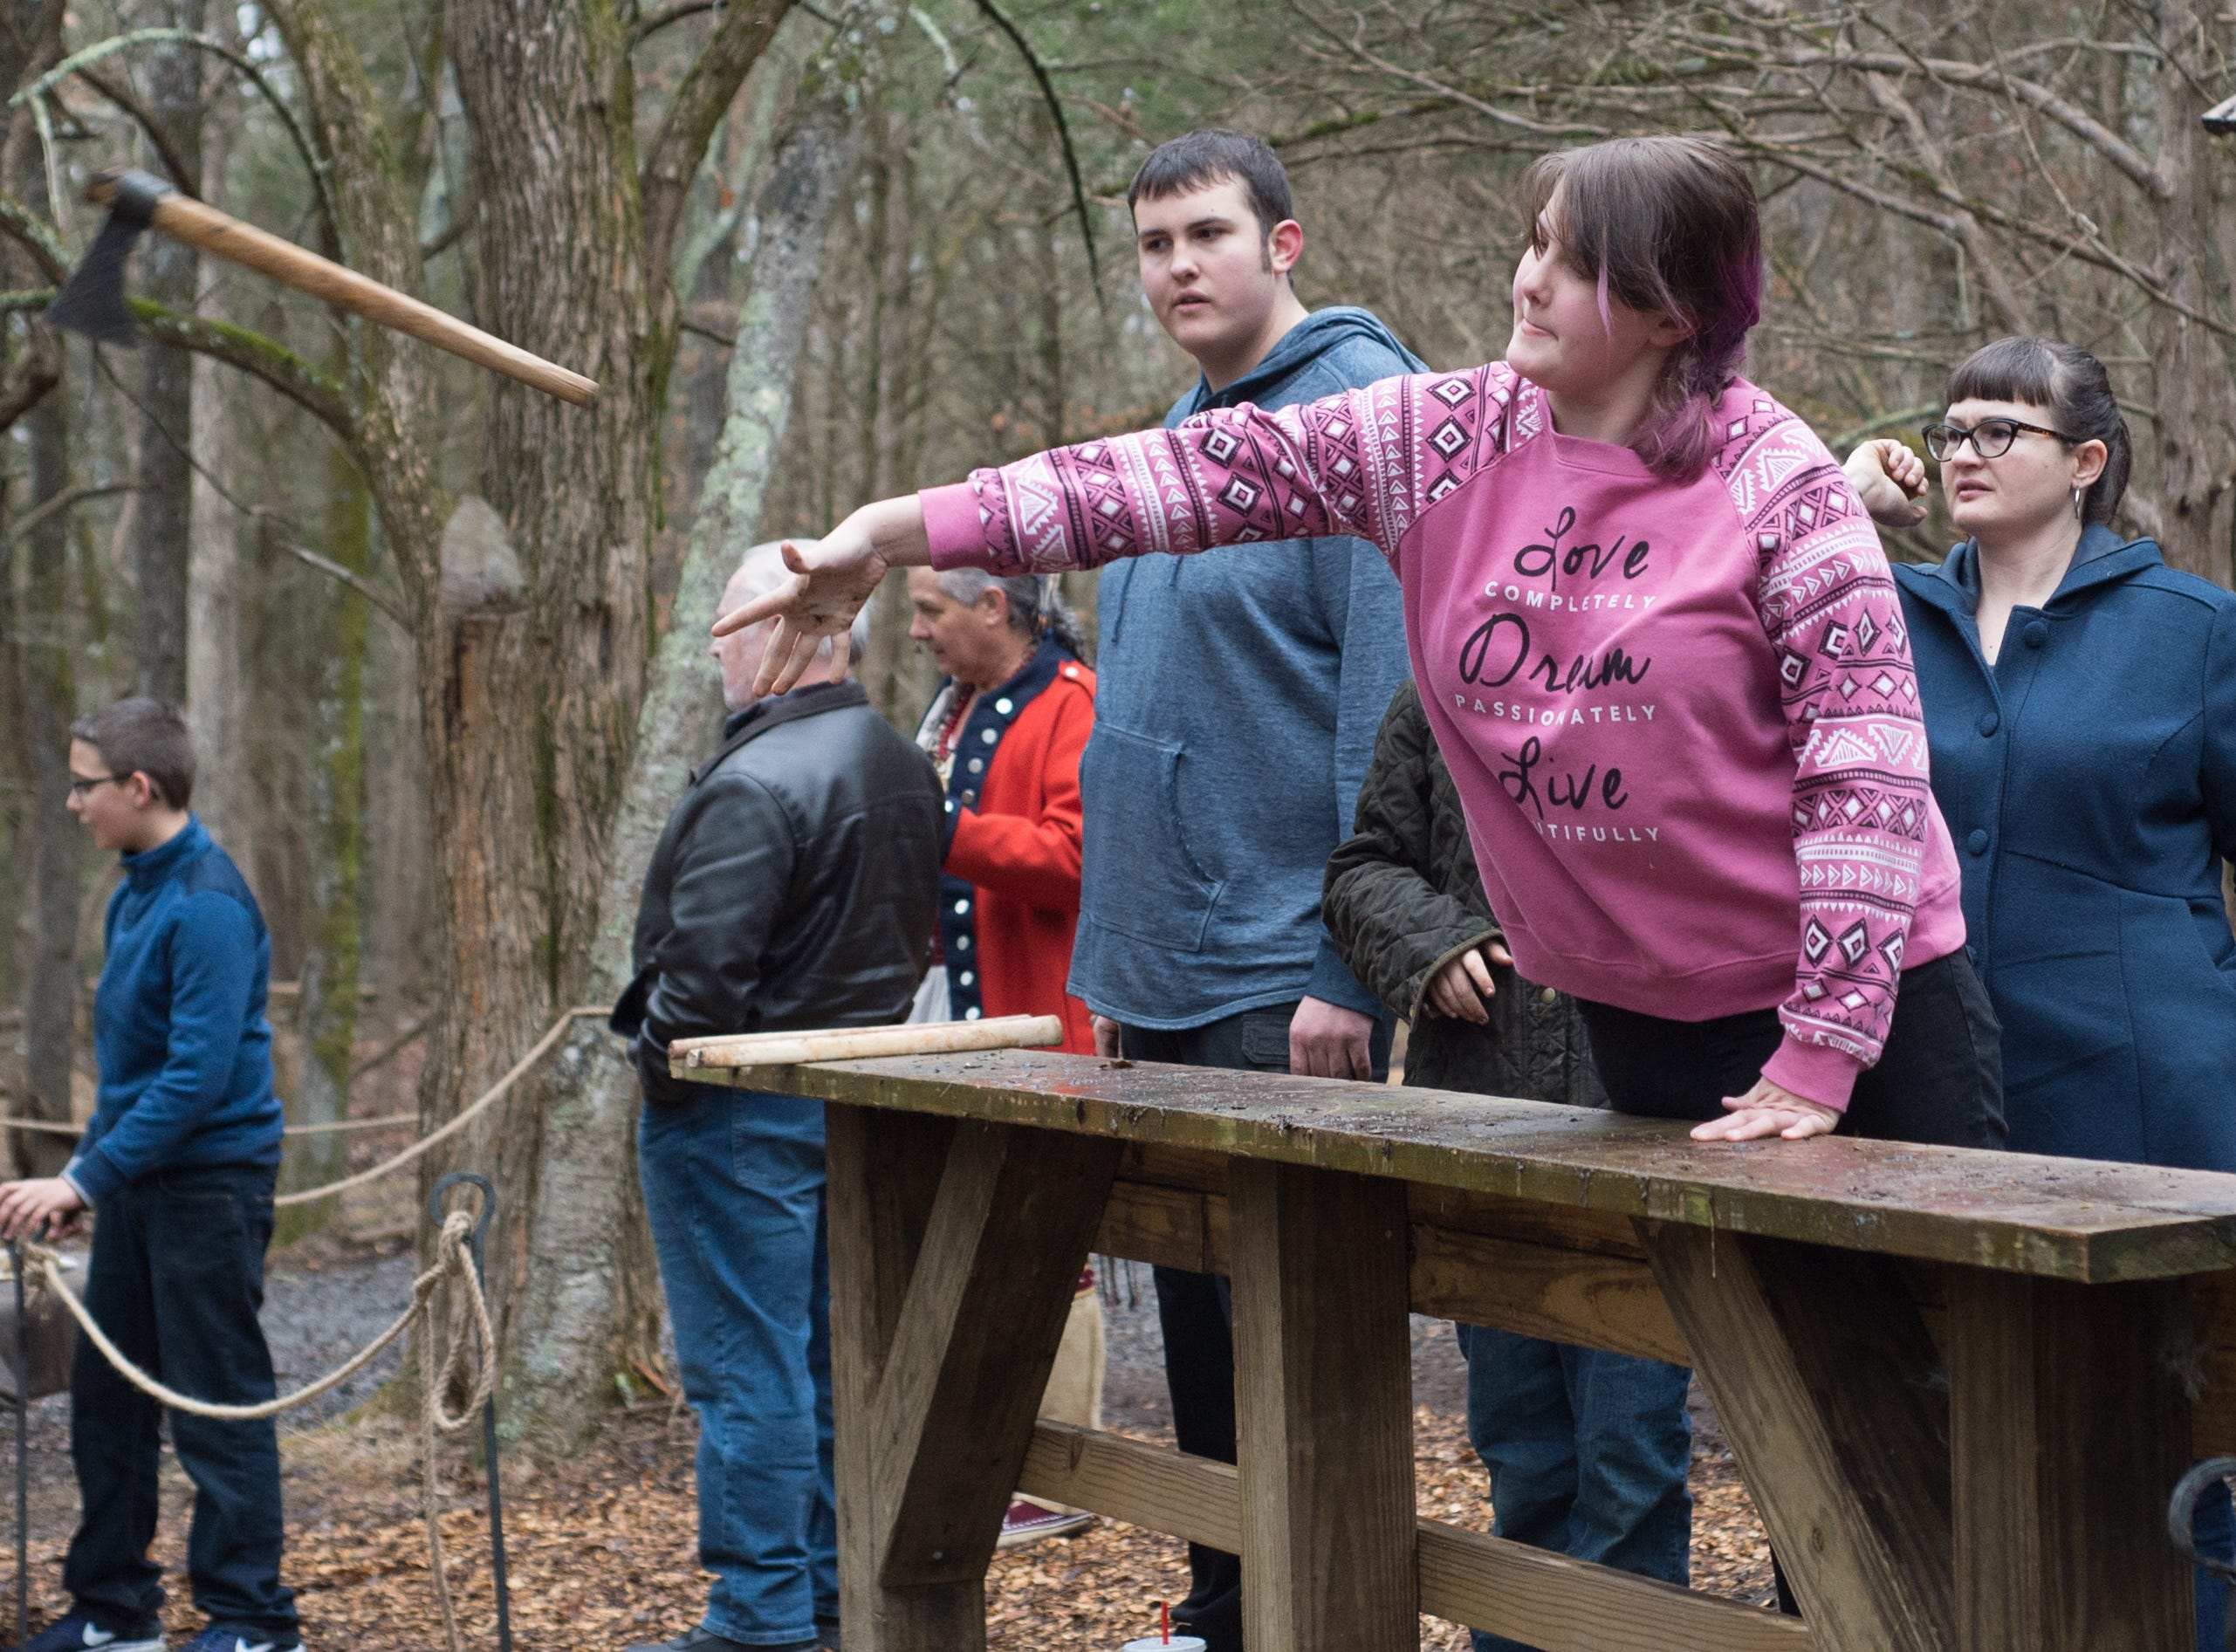 Esther Cooper gives it a try during a Tomahawk Throwing for Beginners event hosted by Middle Tennessee History Coalition at Bledsoe Creek State Park on Saturday, Jan. 12.